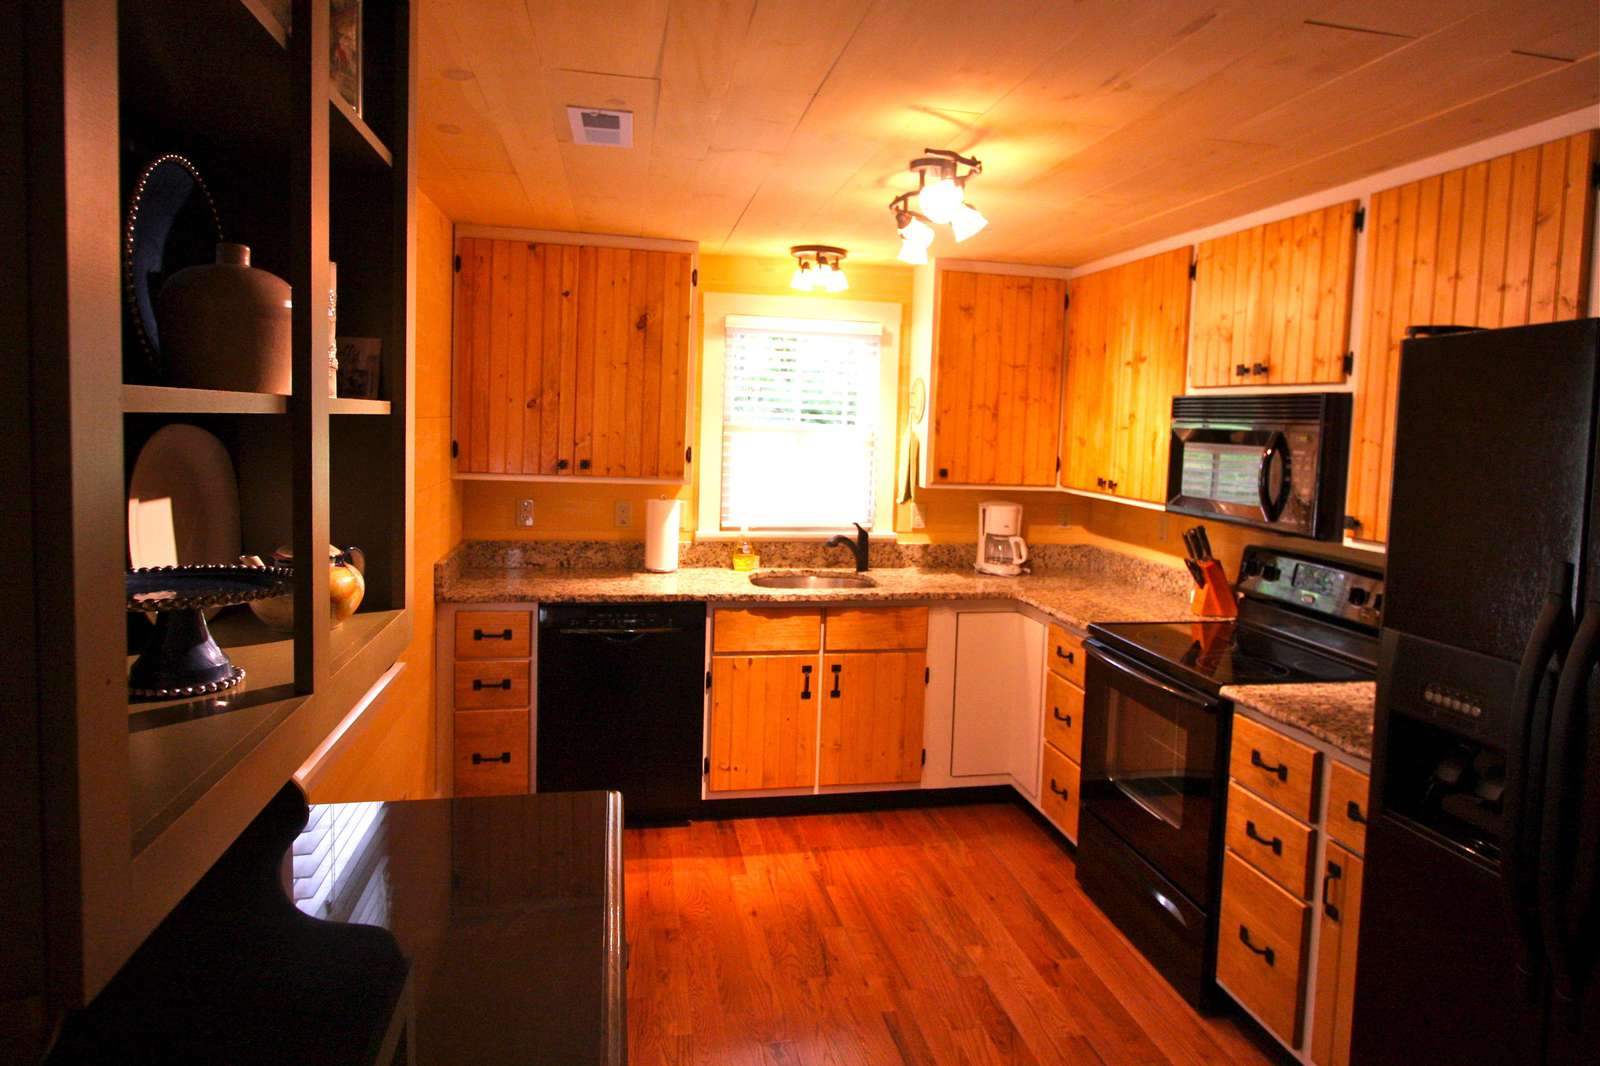 Full kitchen with dishwasher, microwave, refrigerator and oven